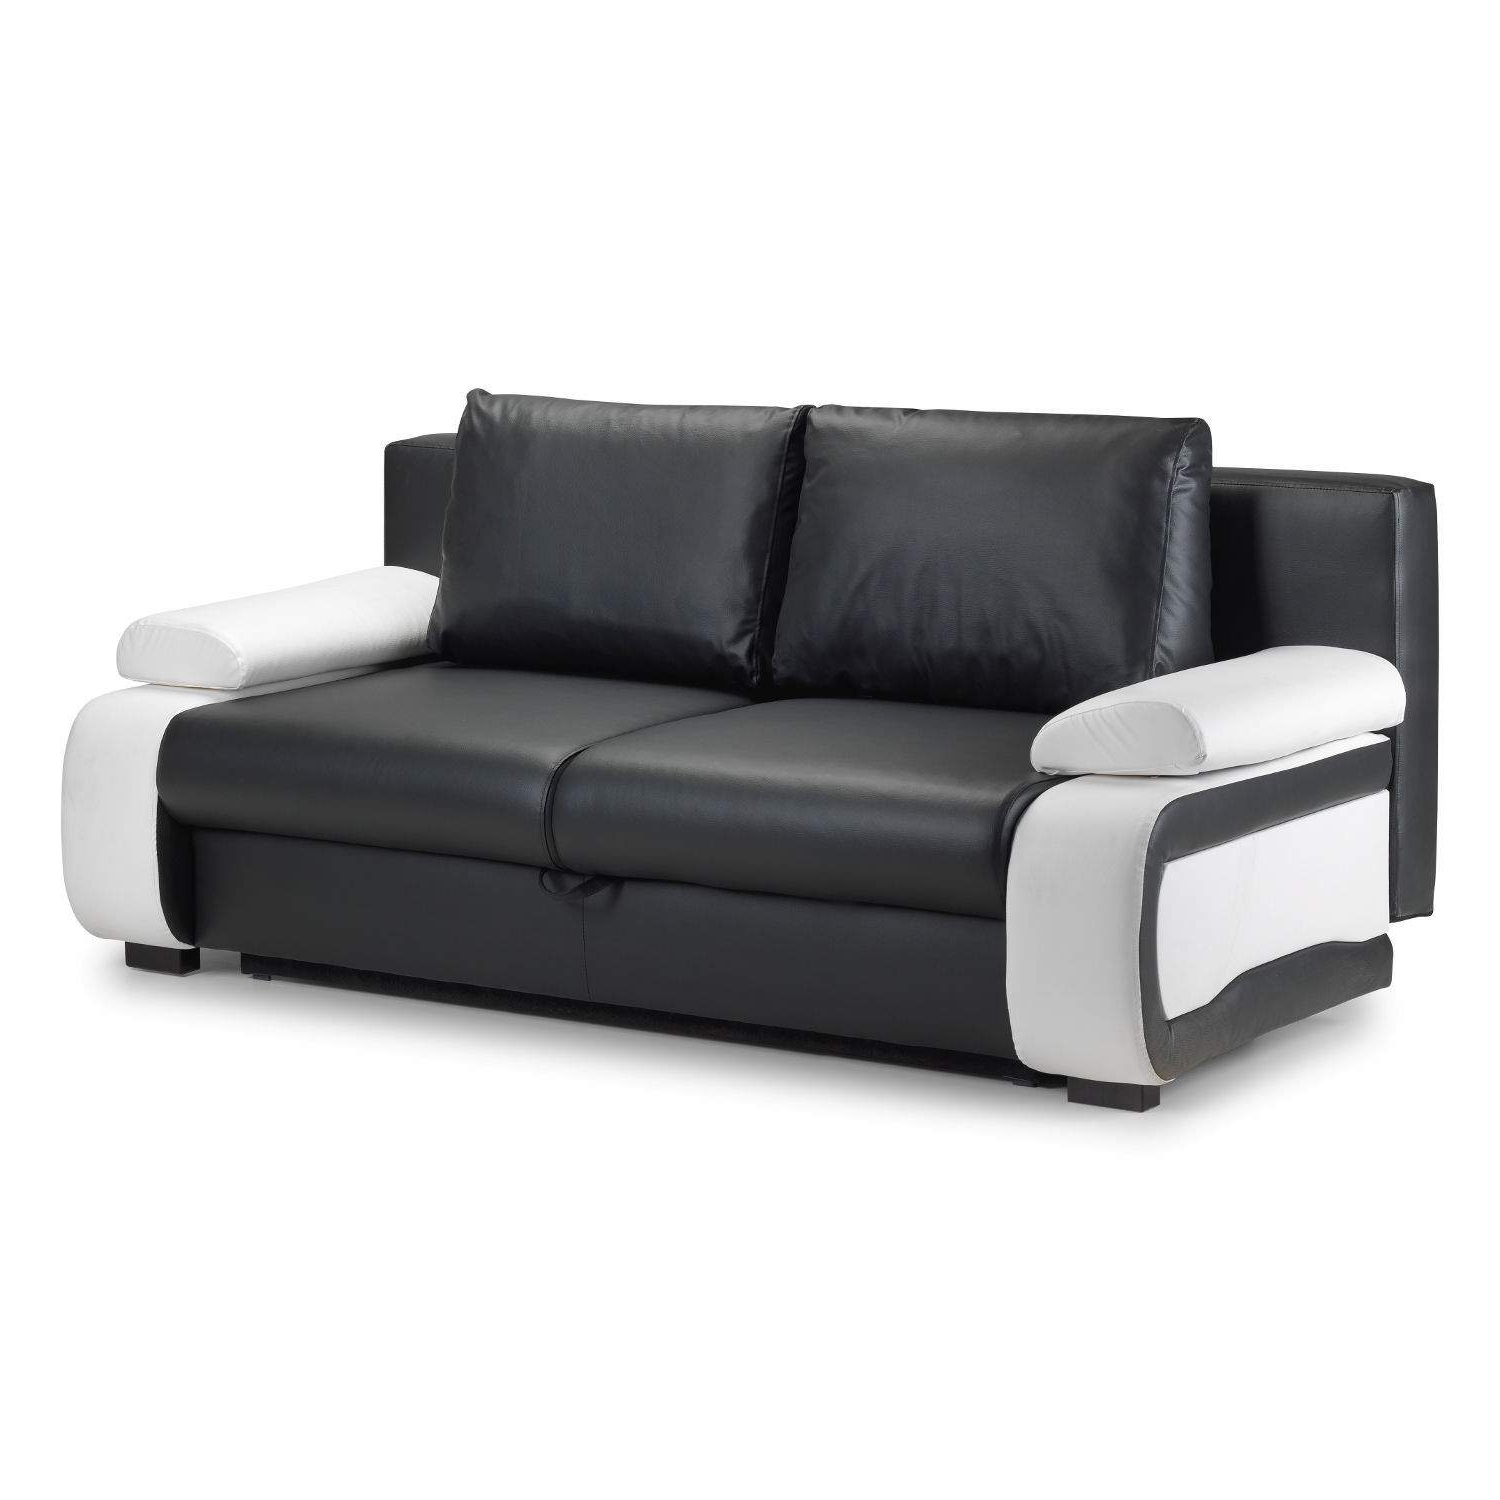 Gallery Of Black 2 Seater Sofas View